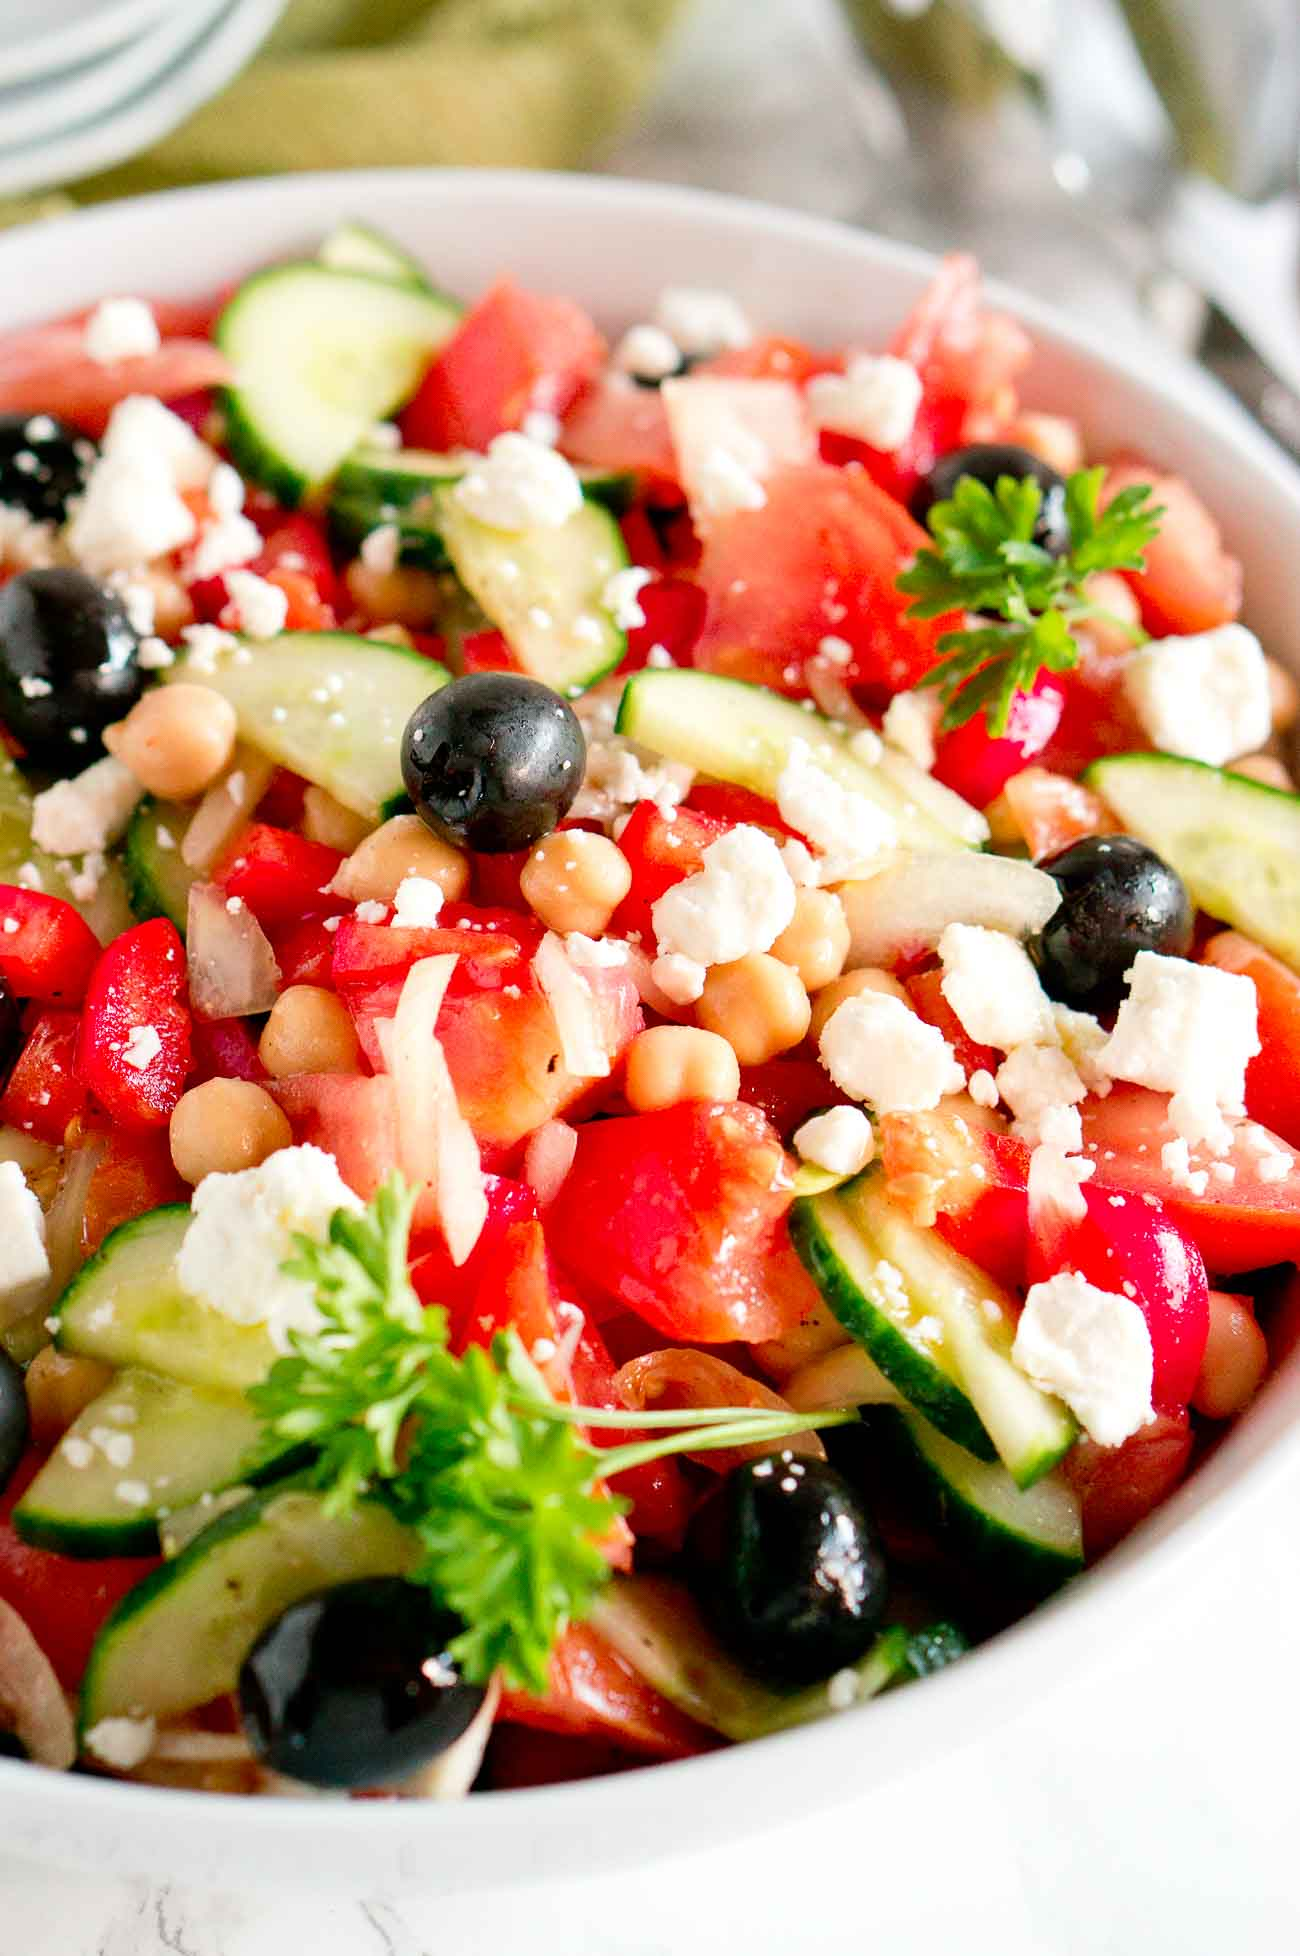 close up shot of tomatoes, cucumbers, peppers, olives and other ingredients in a Greek salad